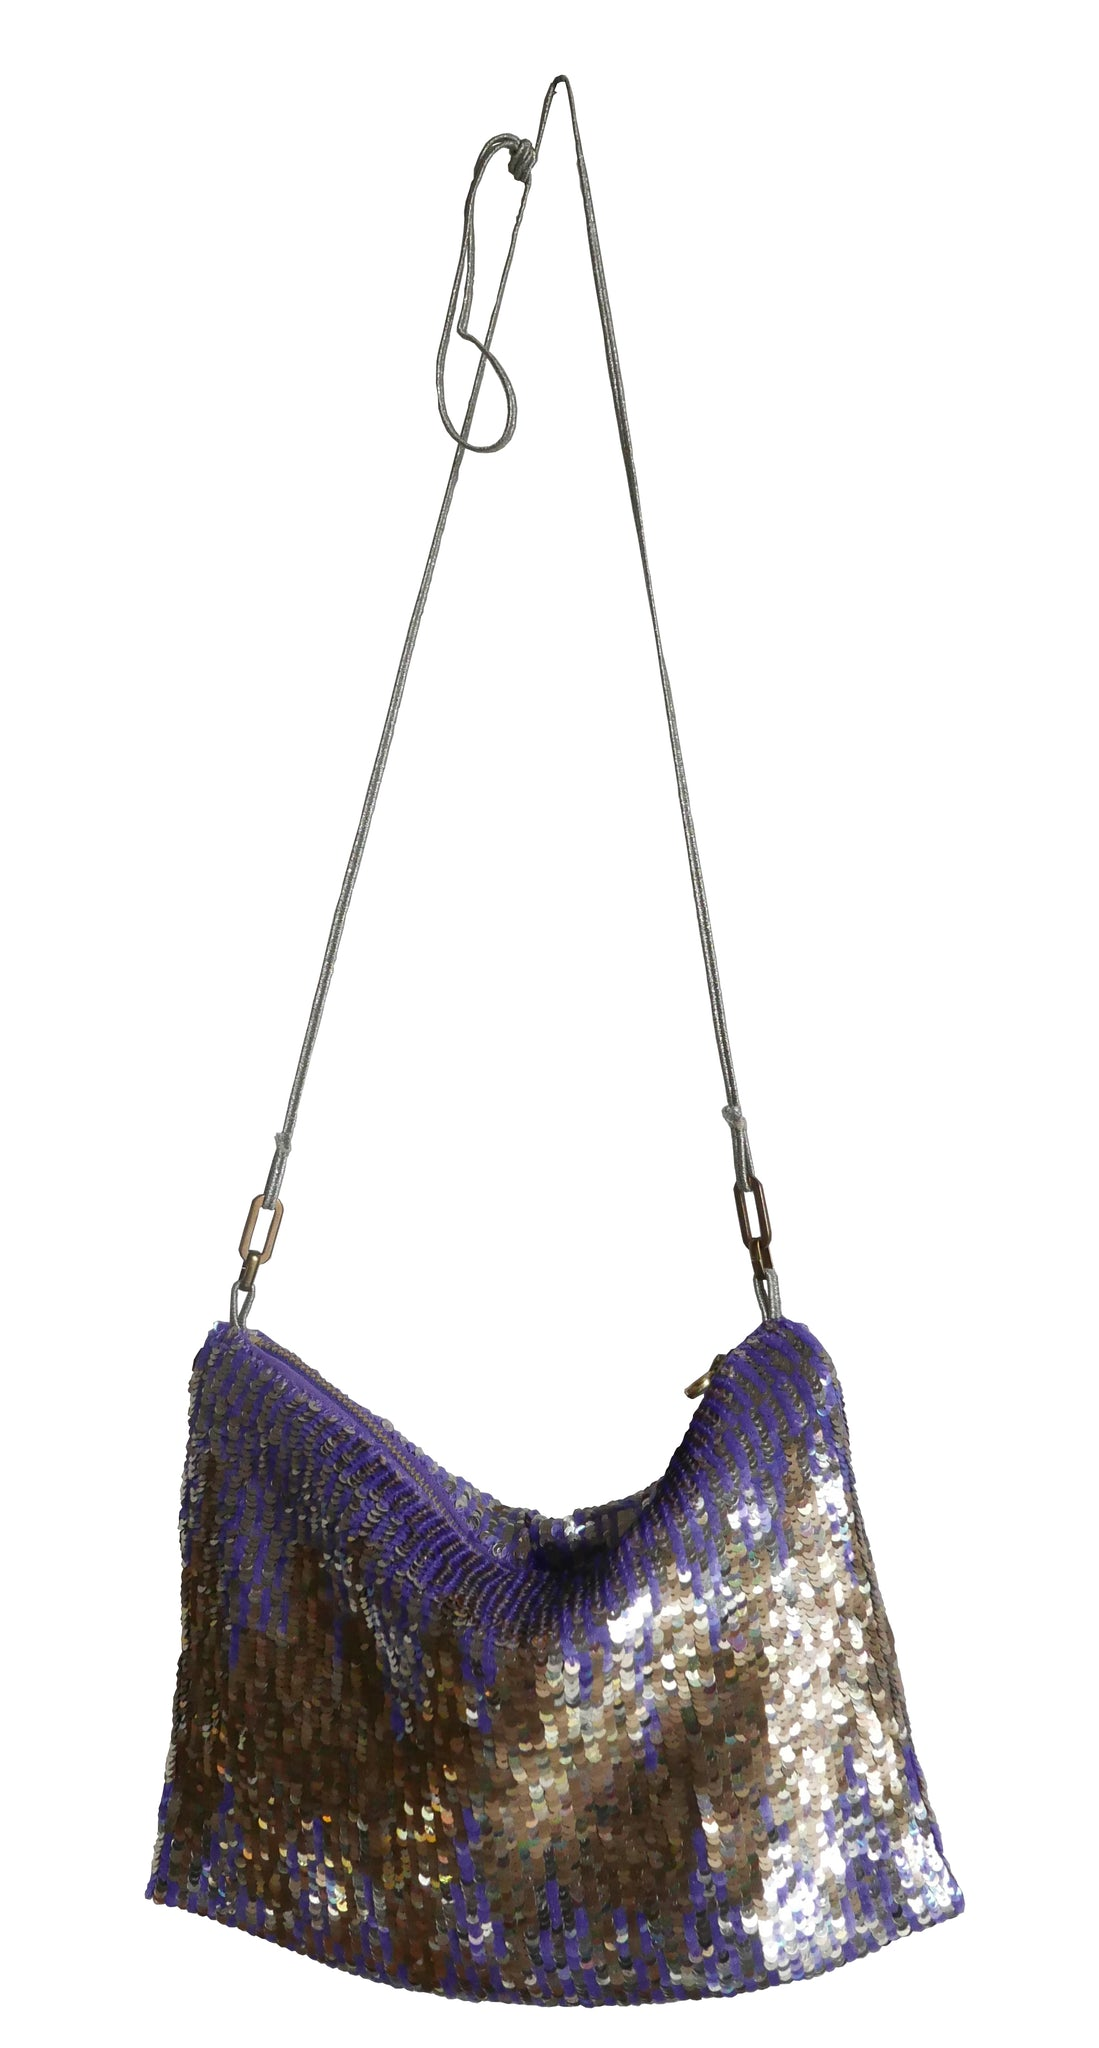 Violet and gold hand sequined purse